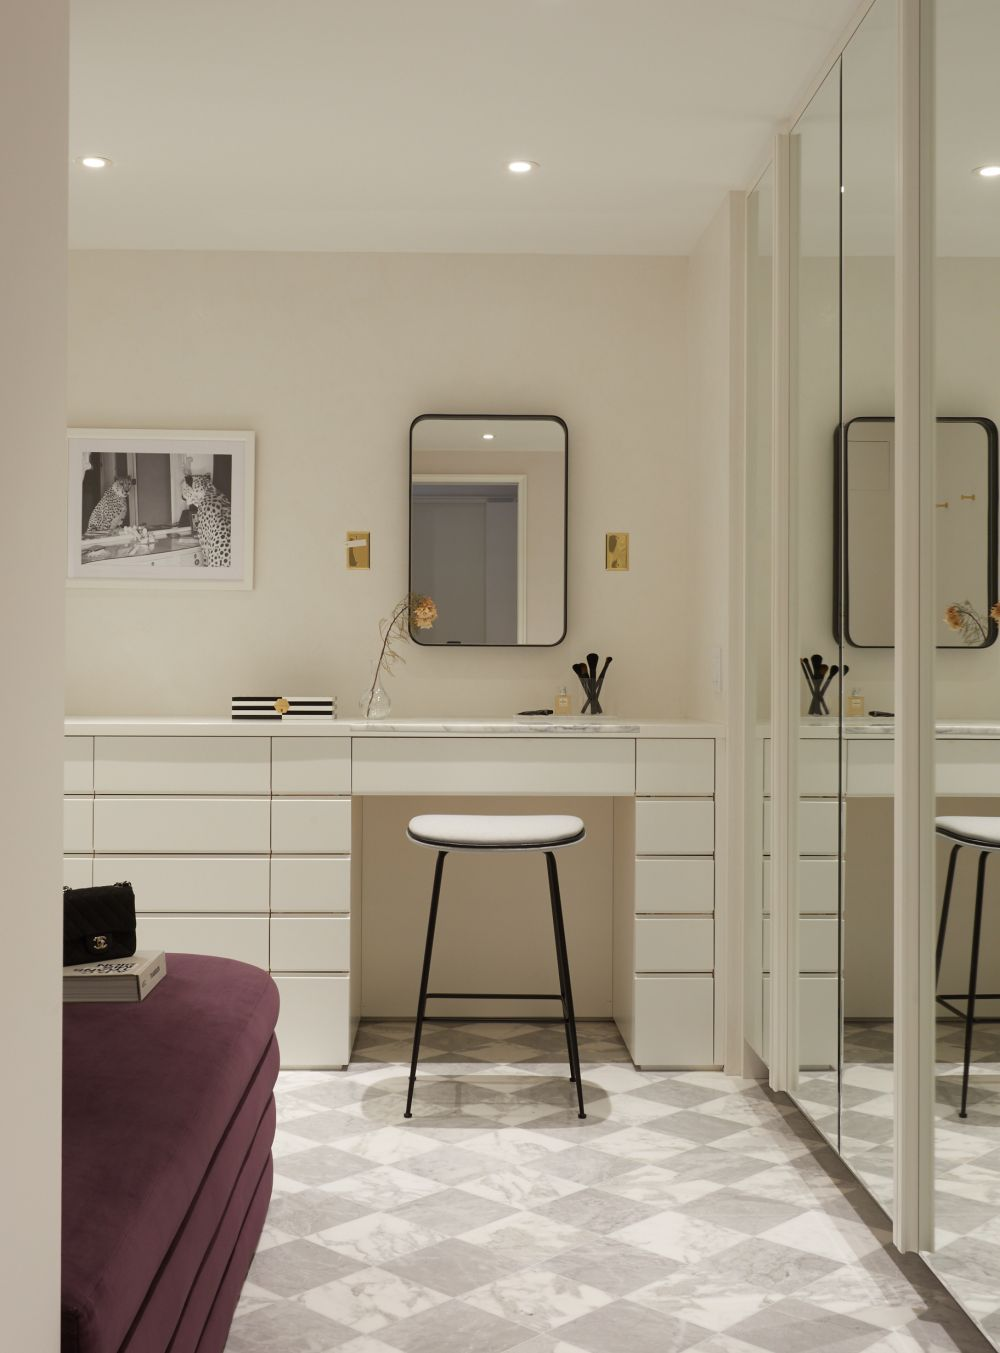 This room also has a custom vanity complemented by a stylish mirror and a sleek accent chair